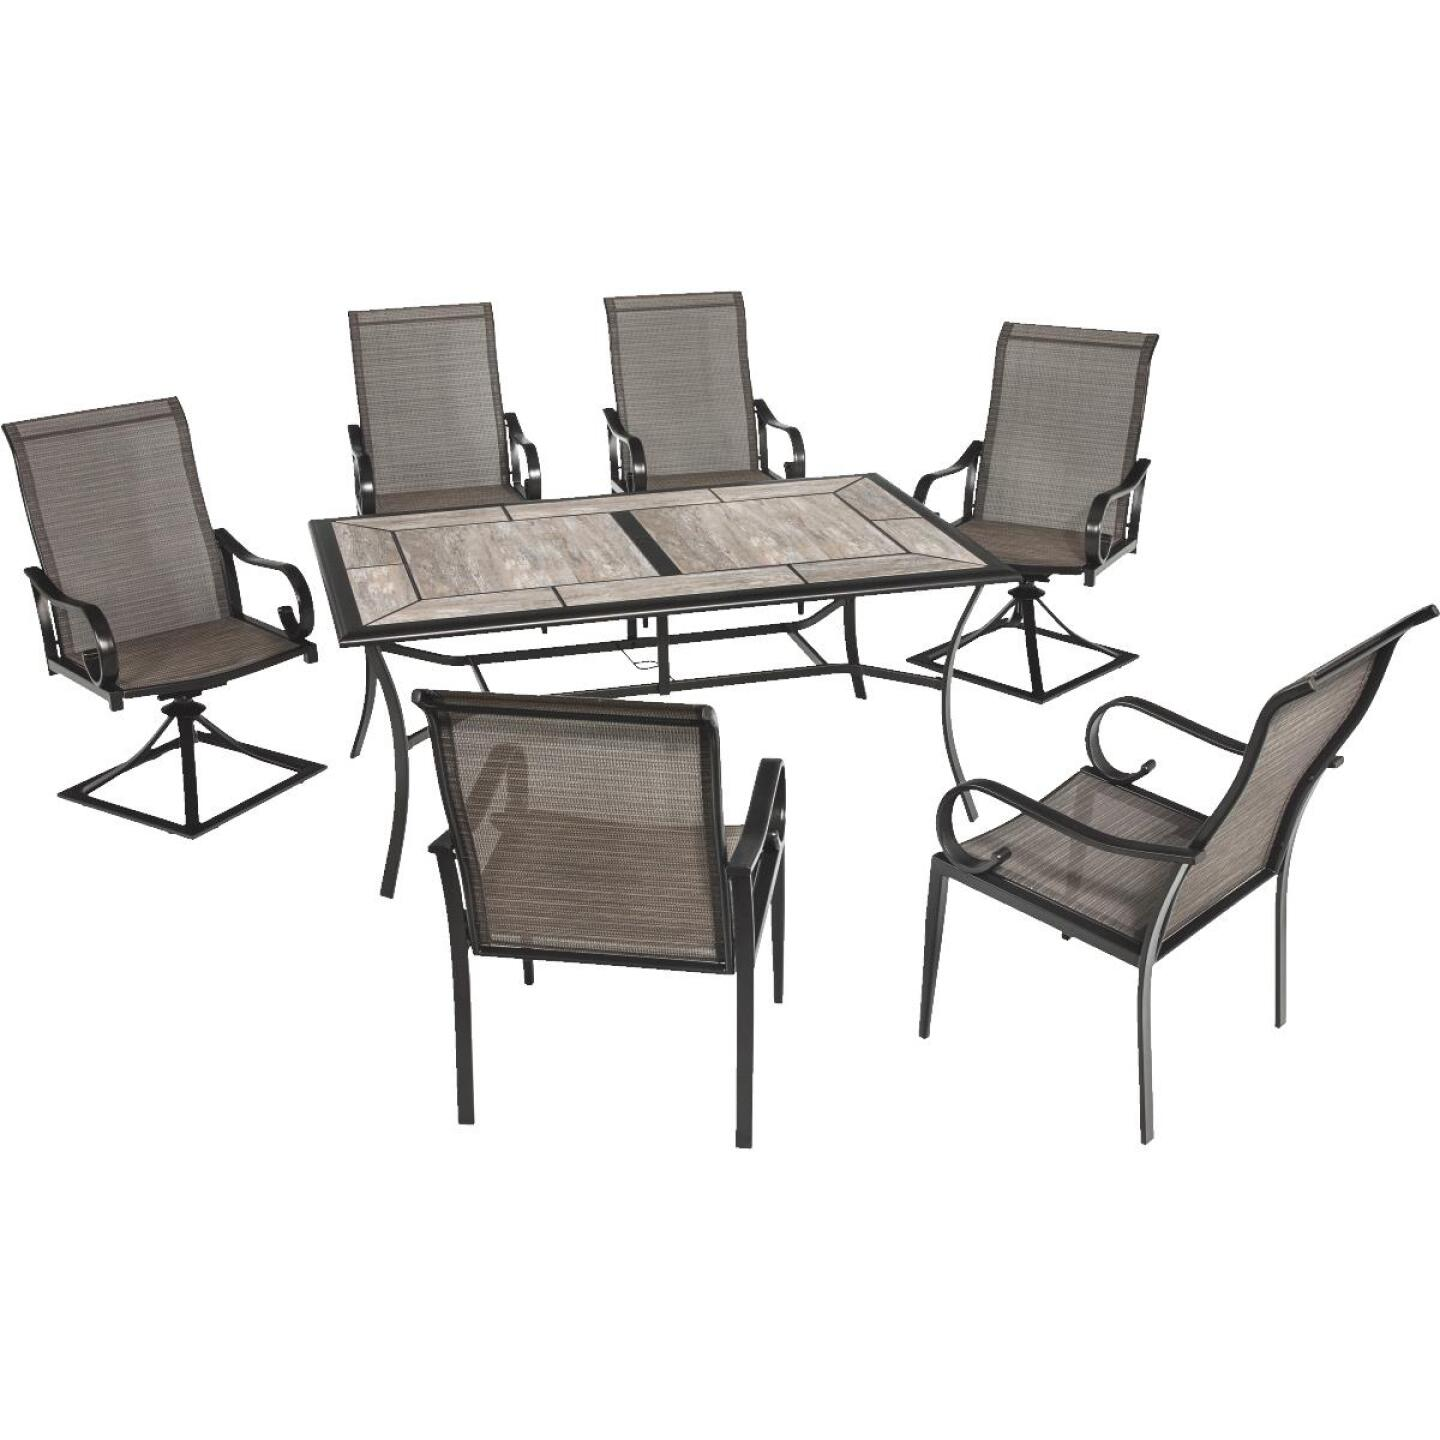 Outdoor Expressions Berkshire 7-Piece Dining Set Image 87